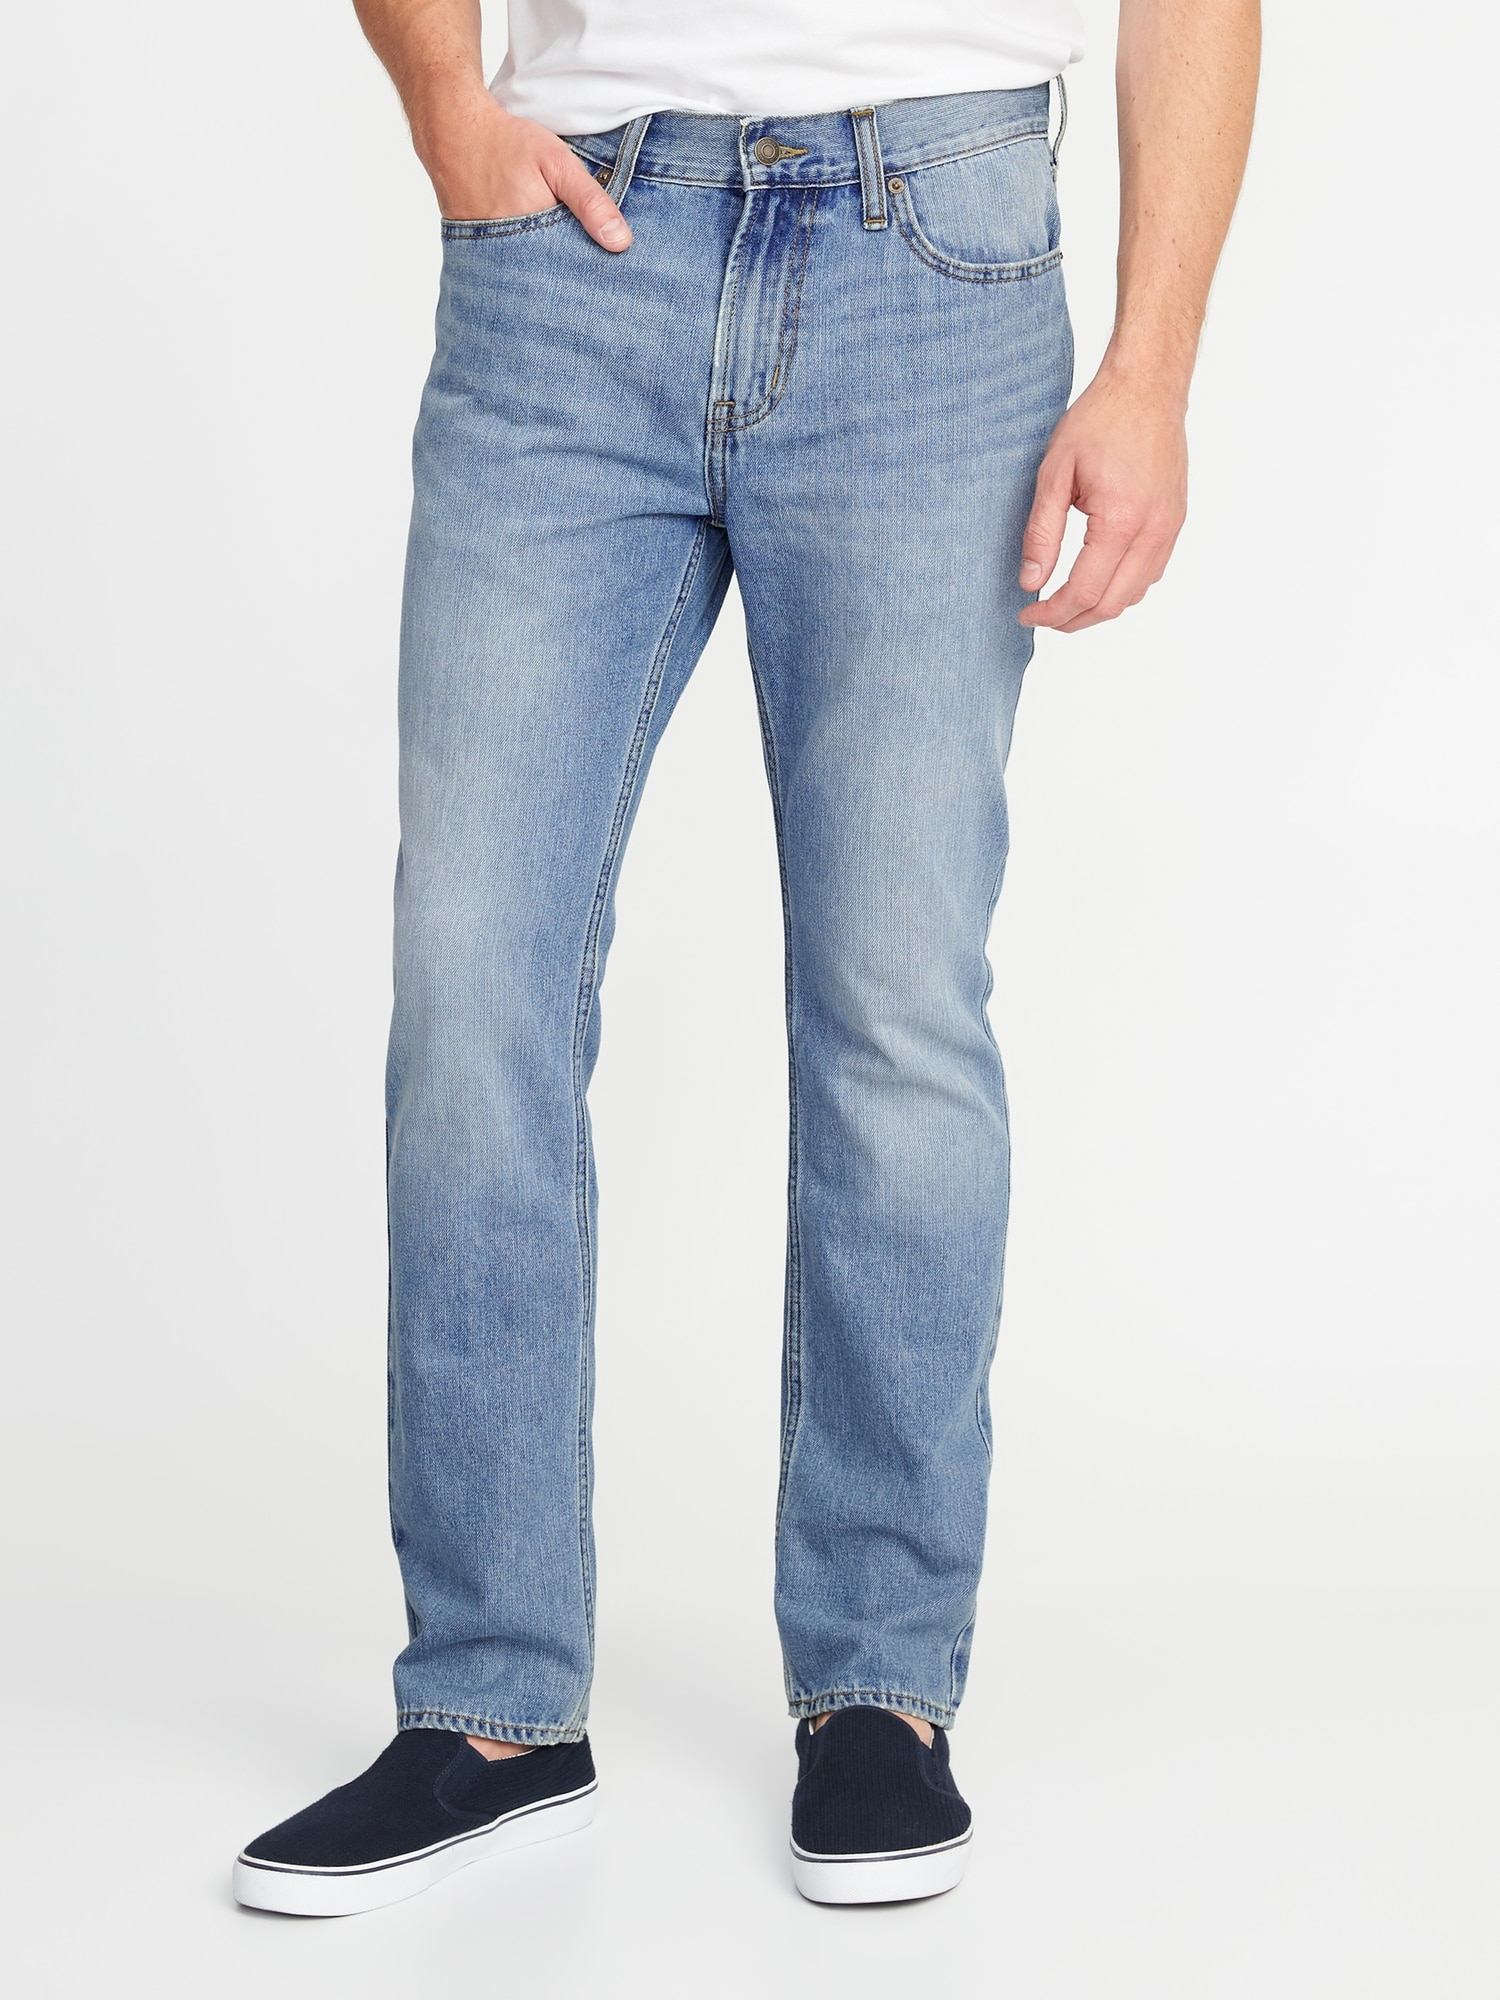 *Hot Deal* Straight Rigid Jeans For Men